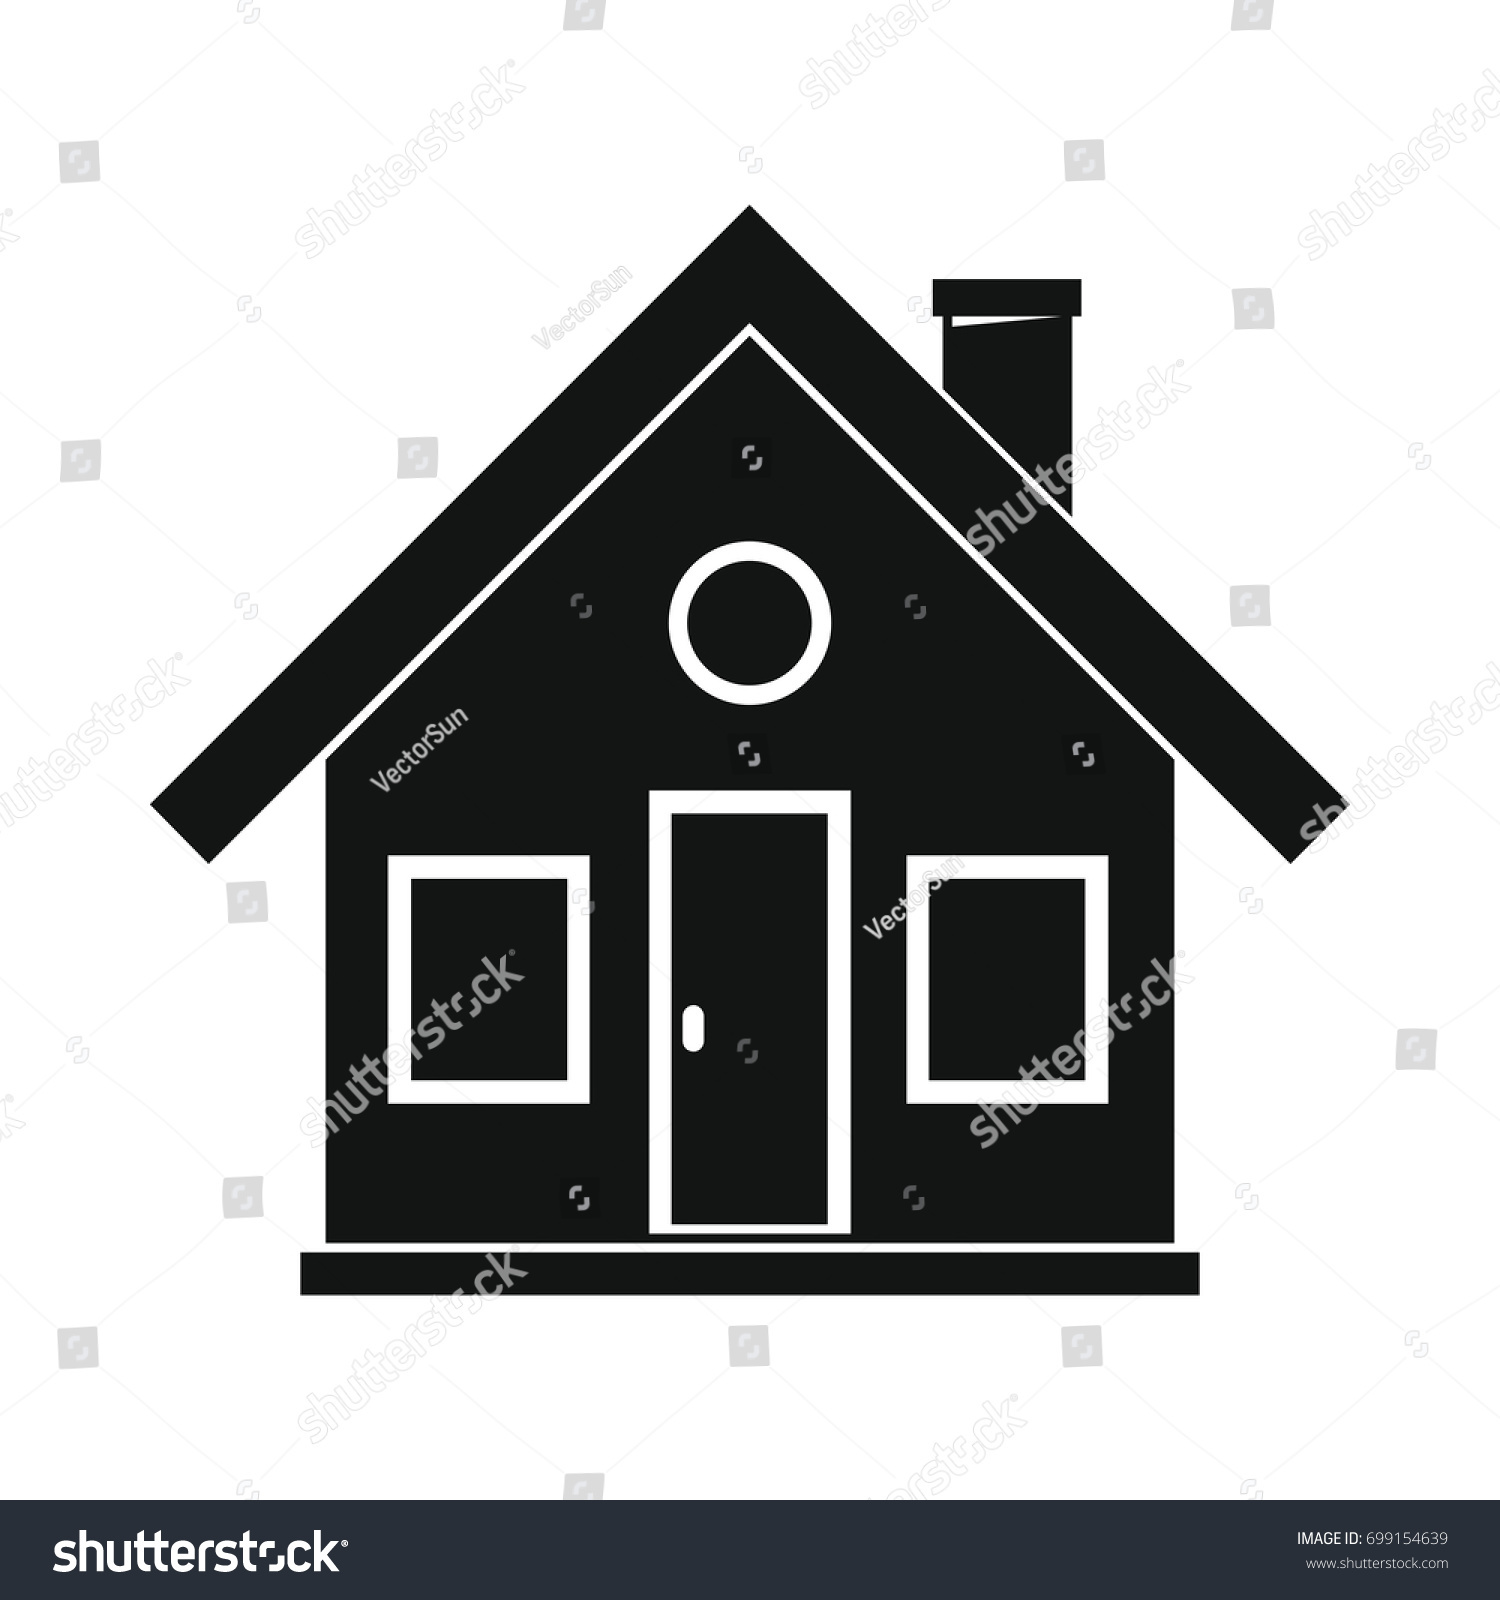 Village House Black Simple Silhouette Icon Stock Vector Royalty Free 699154639 Simple home designs photos pinoy house designs simple home designs photos providing our family with a home is a rewarding gesture as it will offer them safety protection and peace of mind have a closer look on the other simple home design in village youtube source www.youtube.com. https www shutterstock com image vector village house black simple silhouette icon 699154639